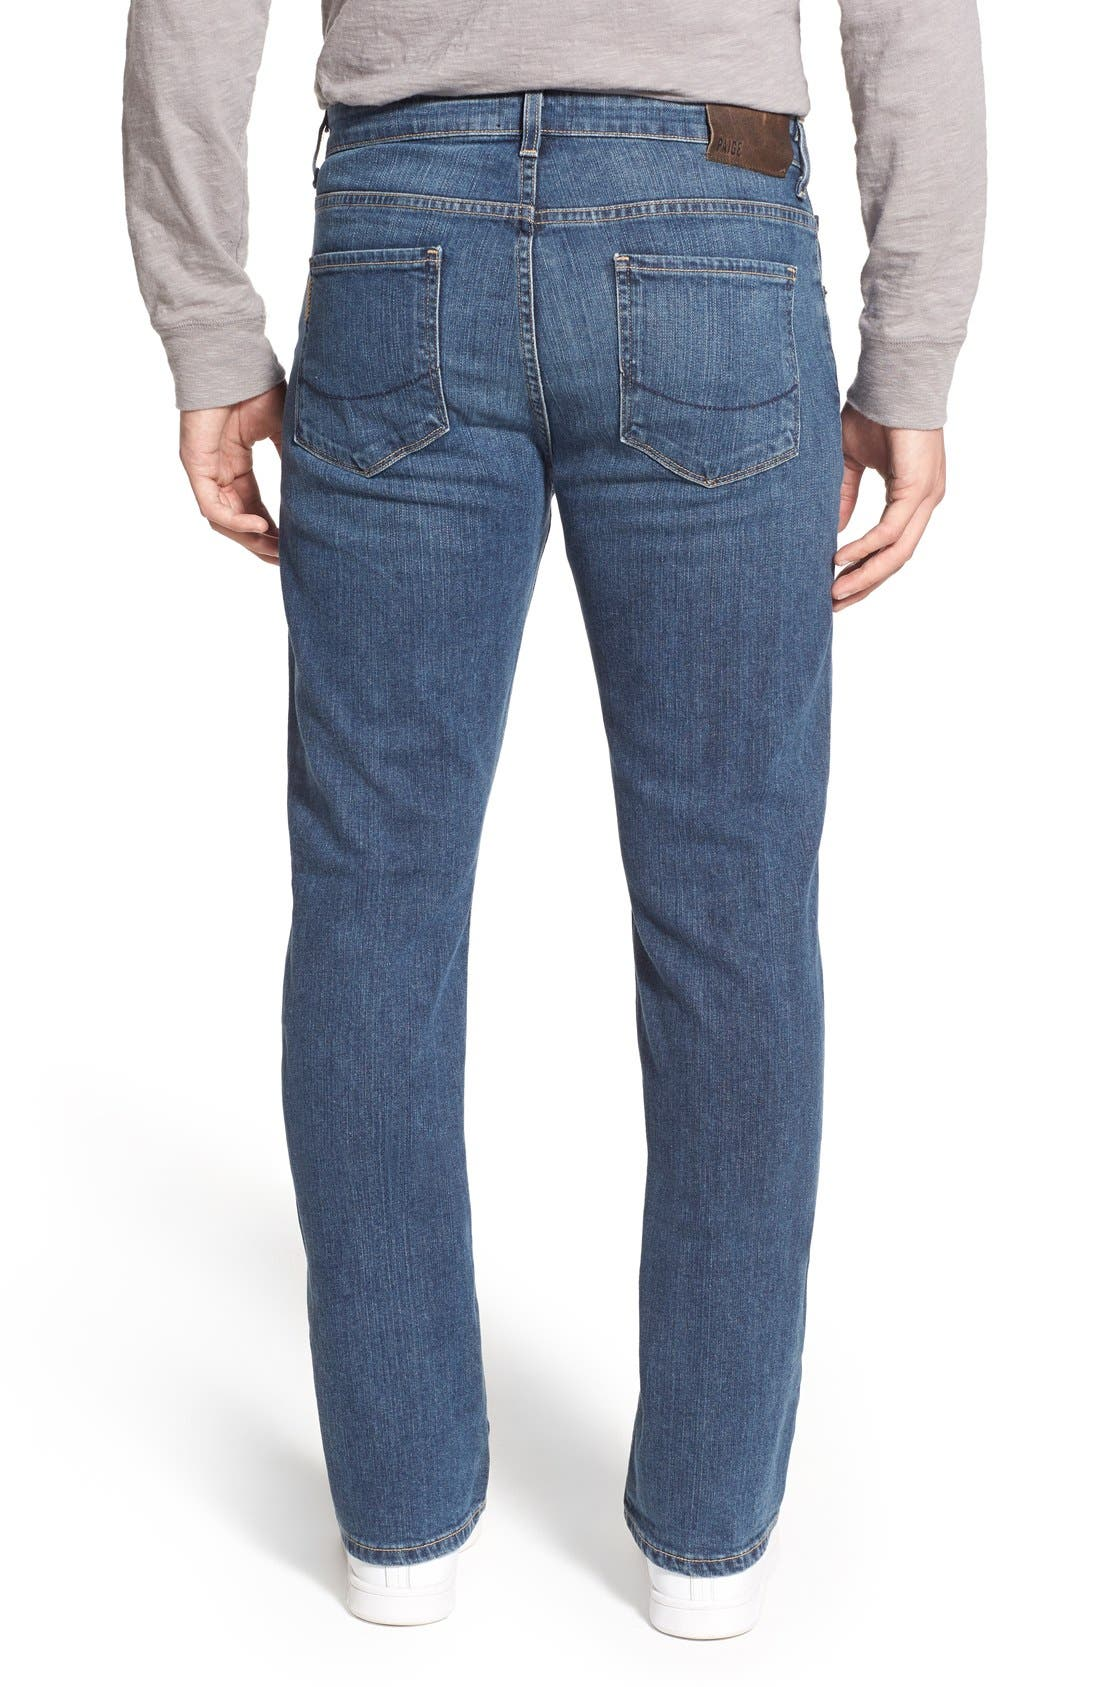 'Doheny' Relaxed Fit Jeans,                             Alternate thumbnail 3, color,                             400